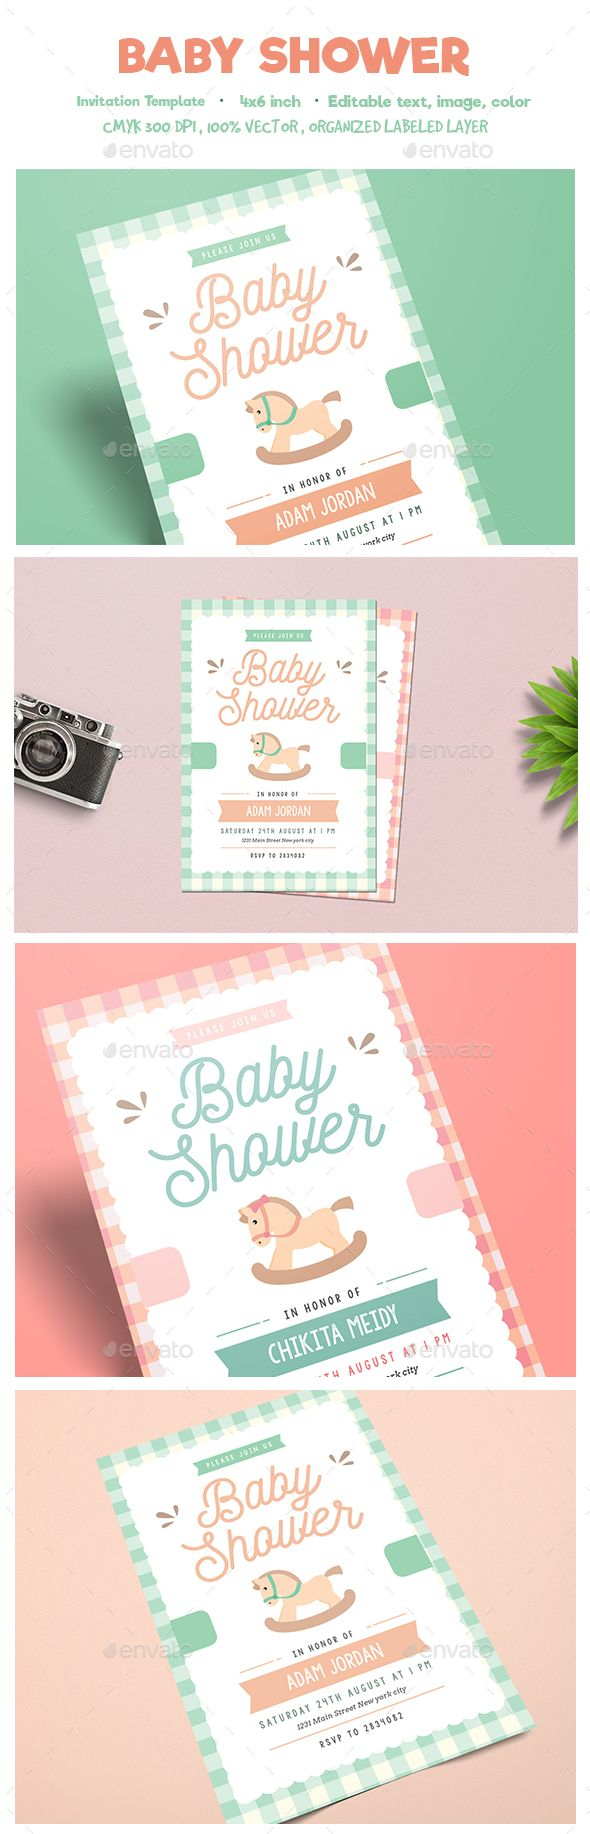 48 best Baby Shower images on Pinterest   Christening, Party party ...